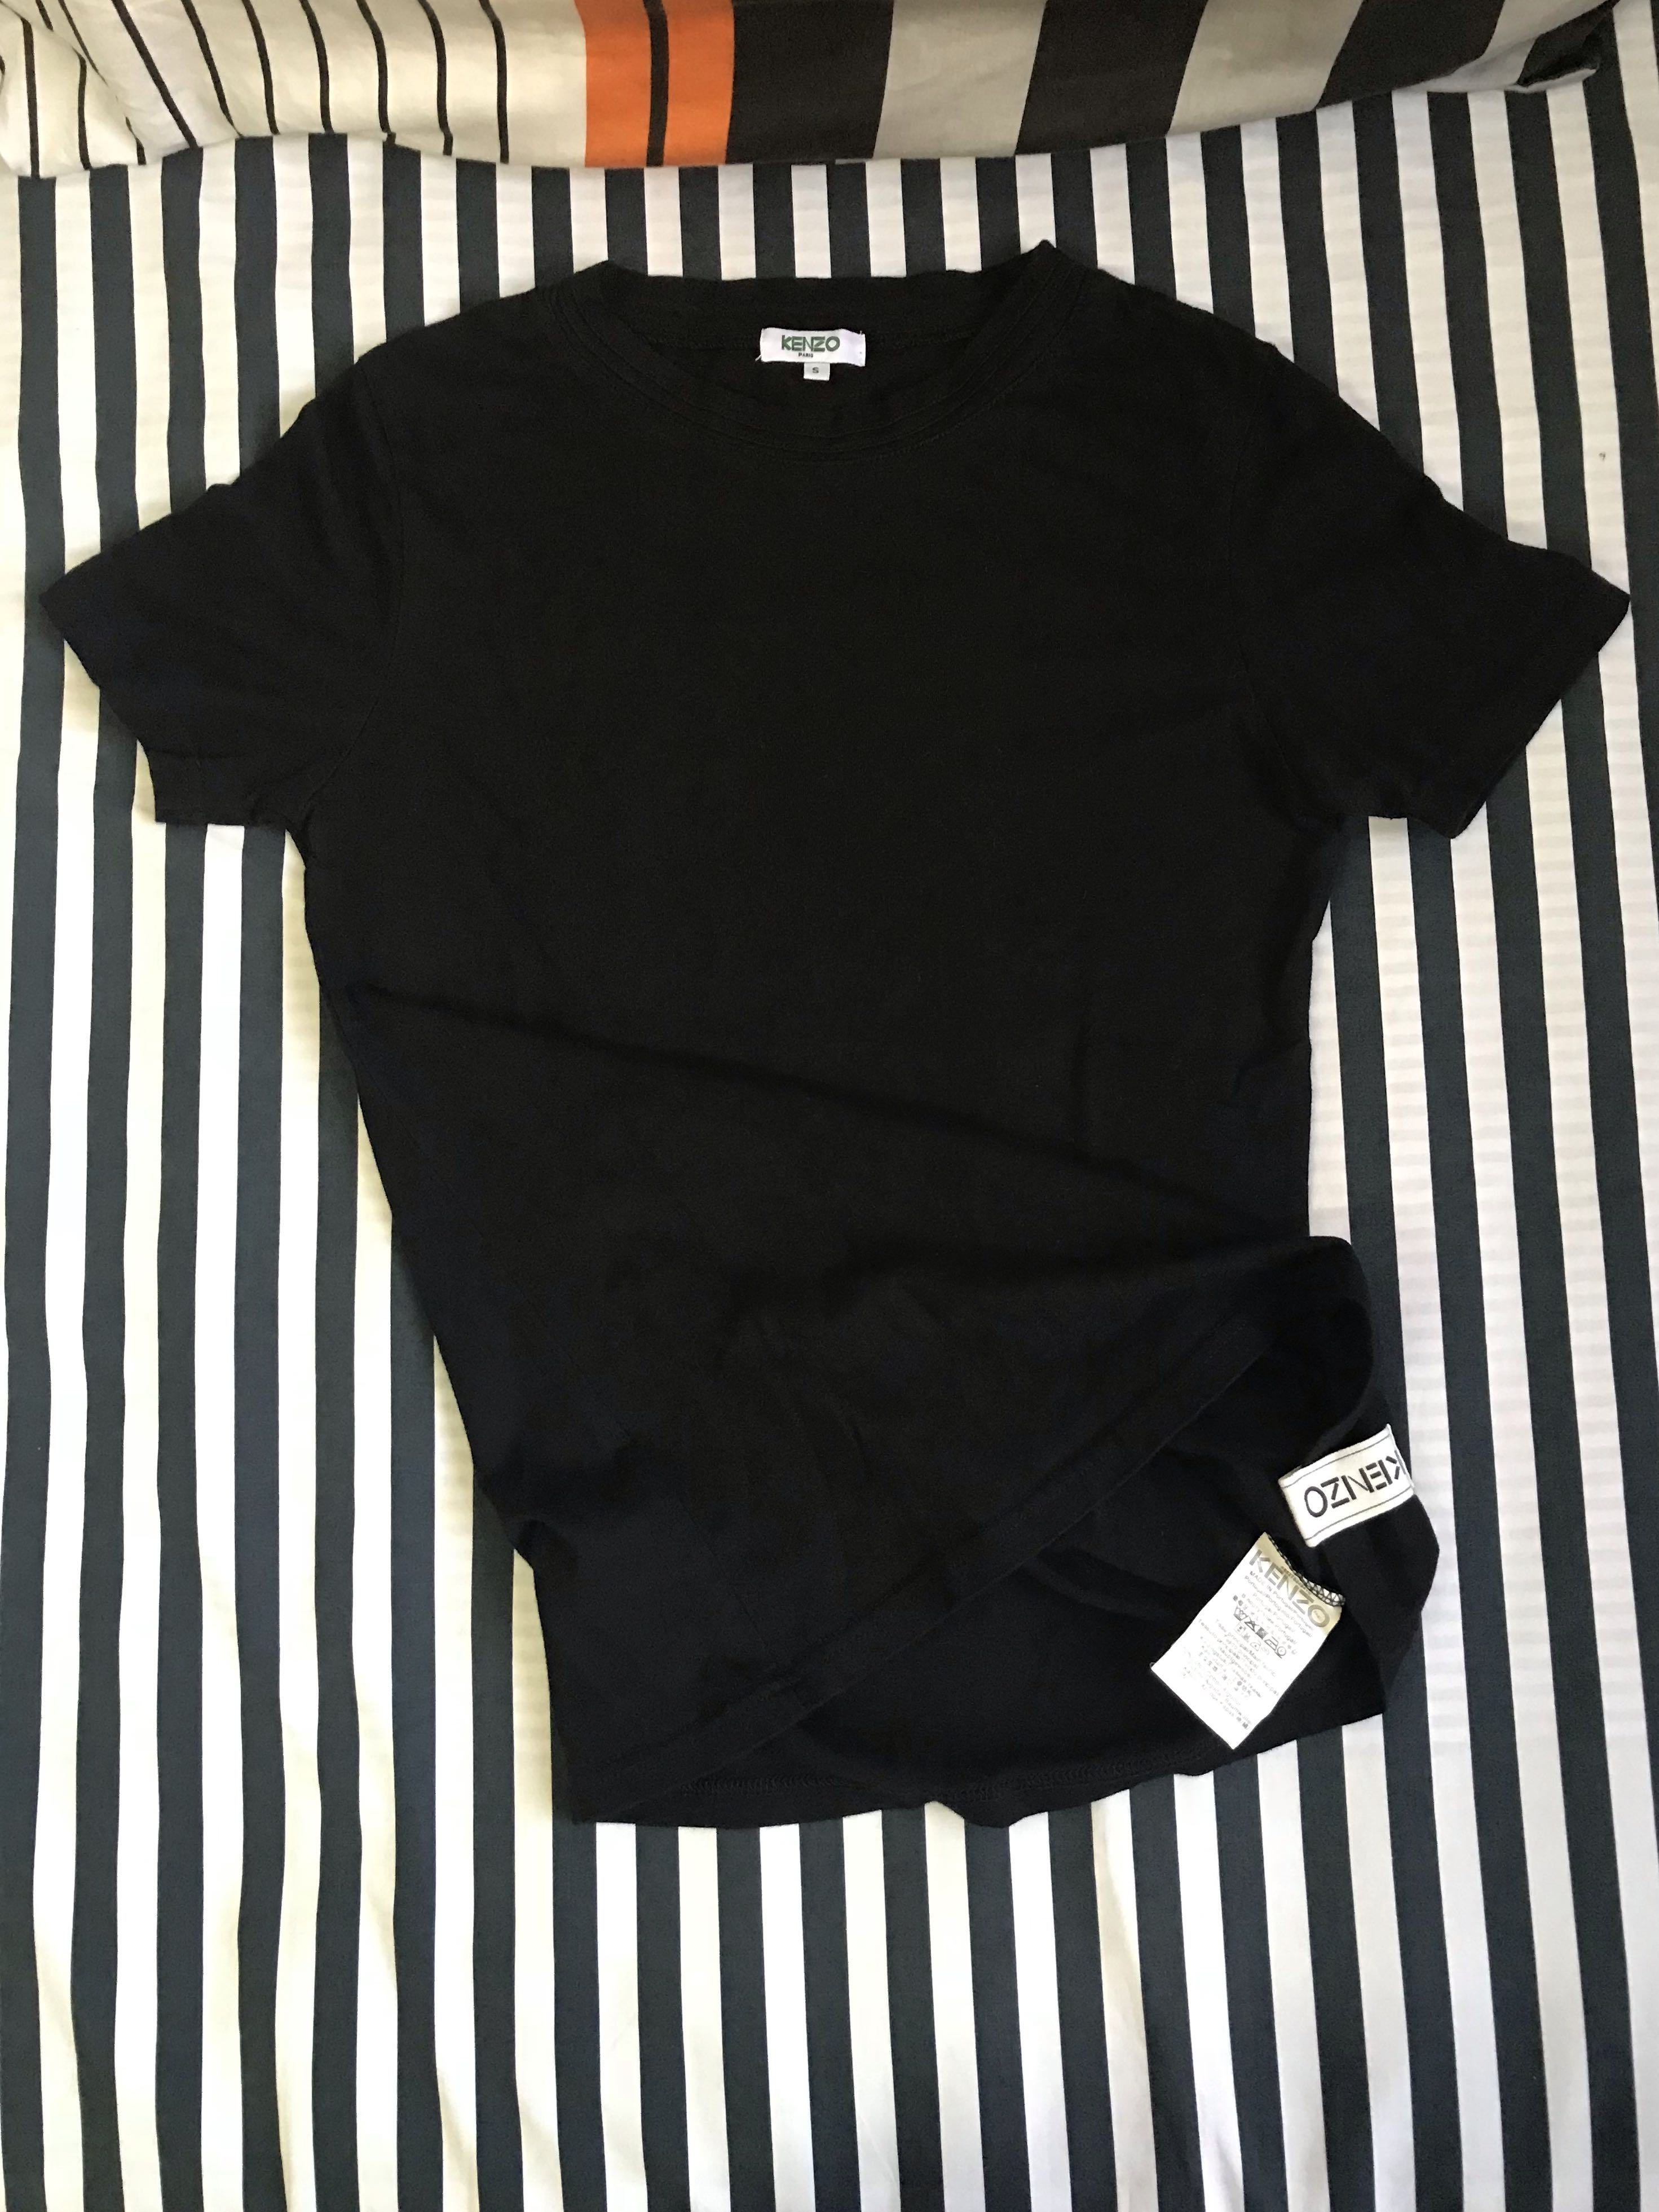 c350c882caa4 KENZO Men s Under Shirt Small (body fitted)